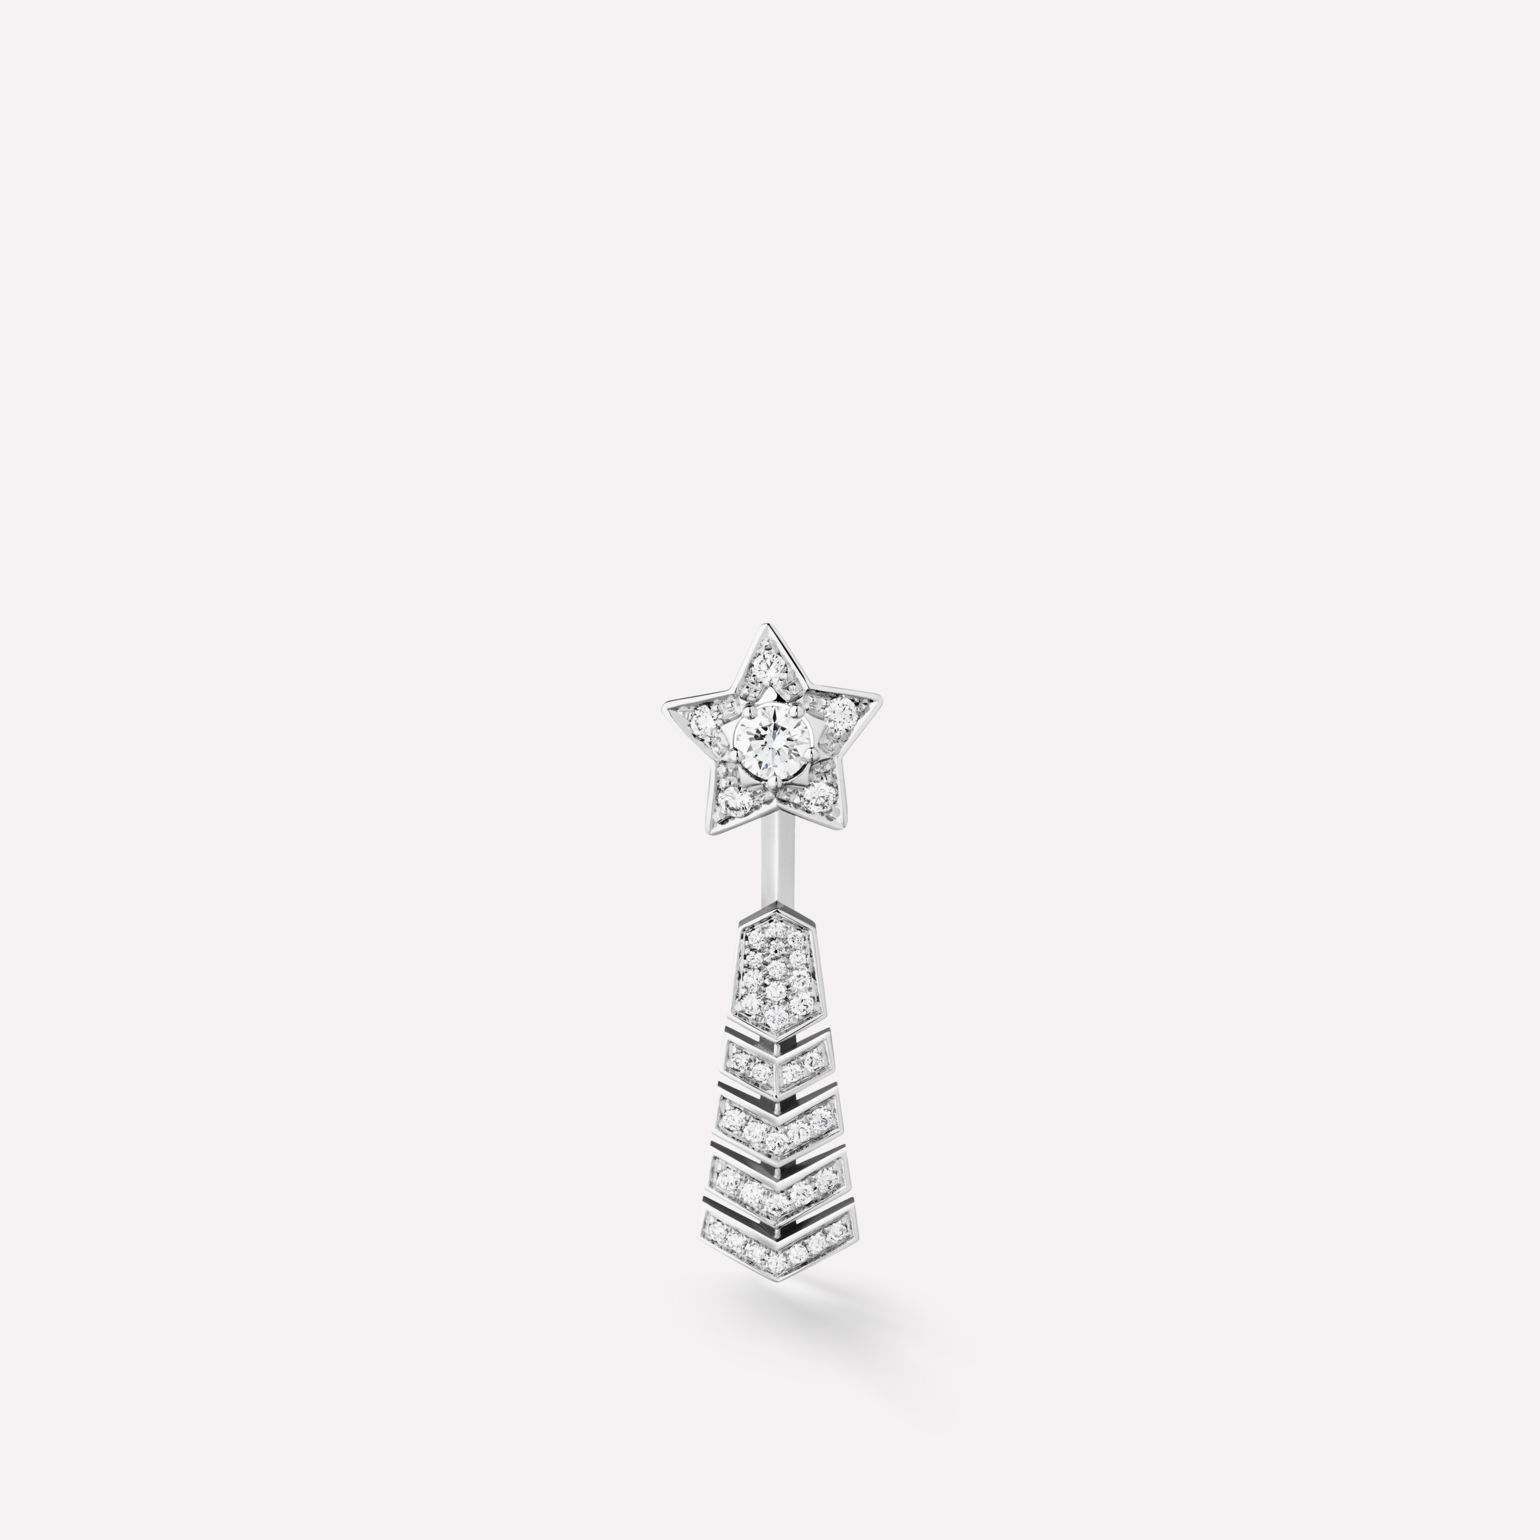 Comète earring Shooting star single earring in 18K white gold and diamonds with one central diamond